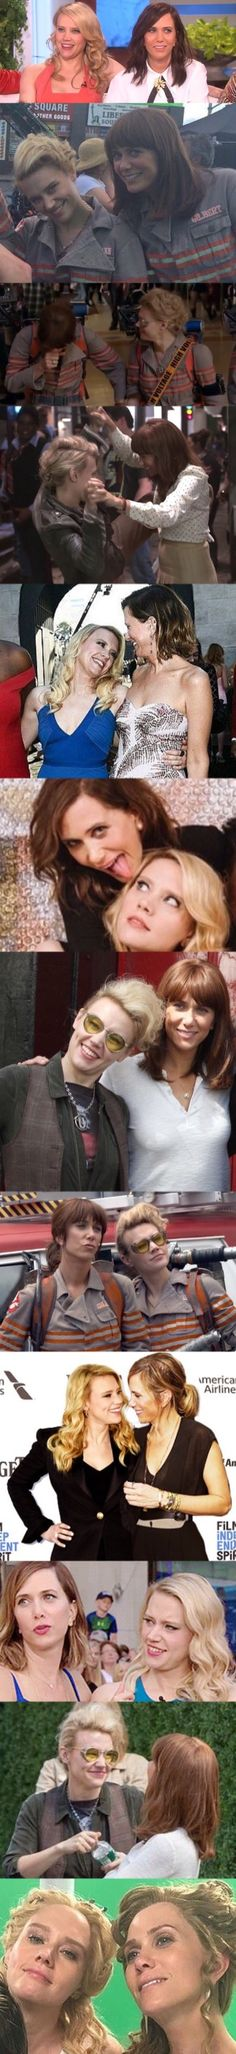 Kate and Kristen, I love their friendship (and I kinda ship them tbh) - Holtzbert - Jillian Holtzmann - Erin Gilbert - Kate McKinnon - Kristen Wiig - Ghostbusters 2016